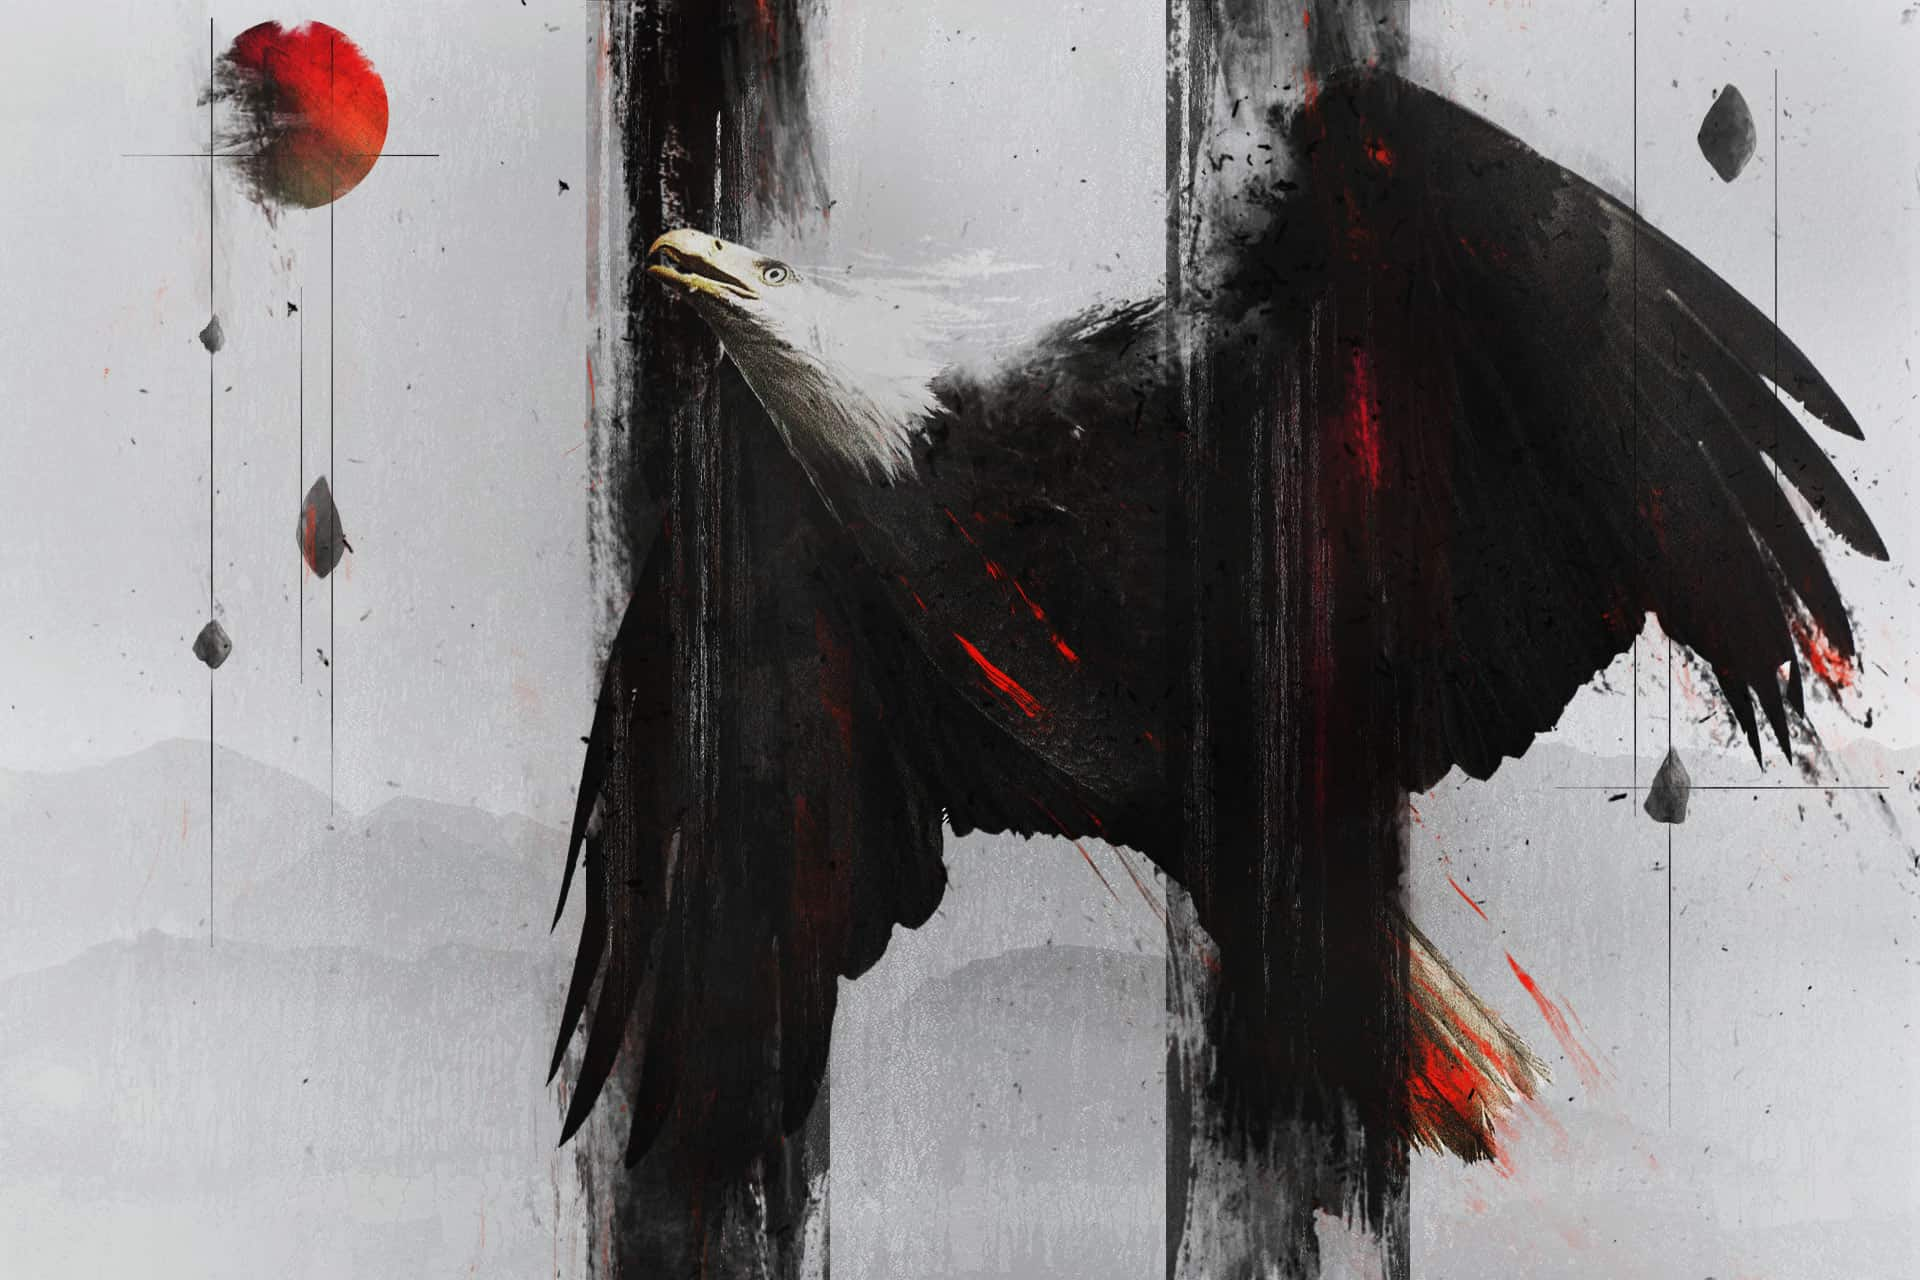 How to Create an Abstract Eagle Photo Manipulation with Adobe Photoshop